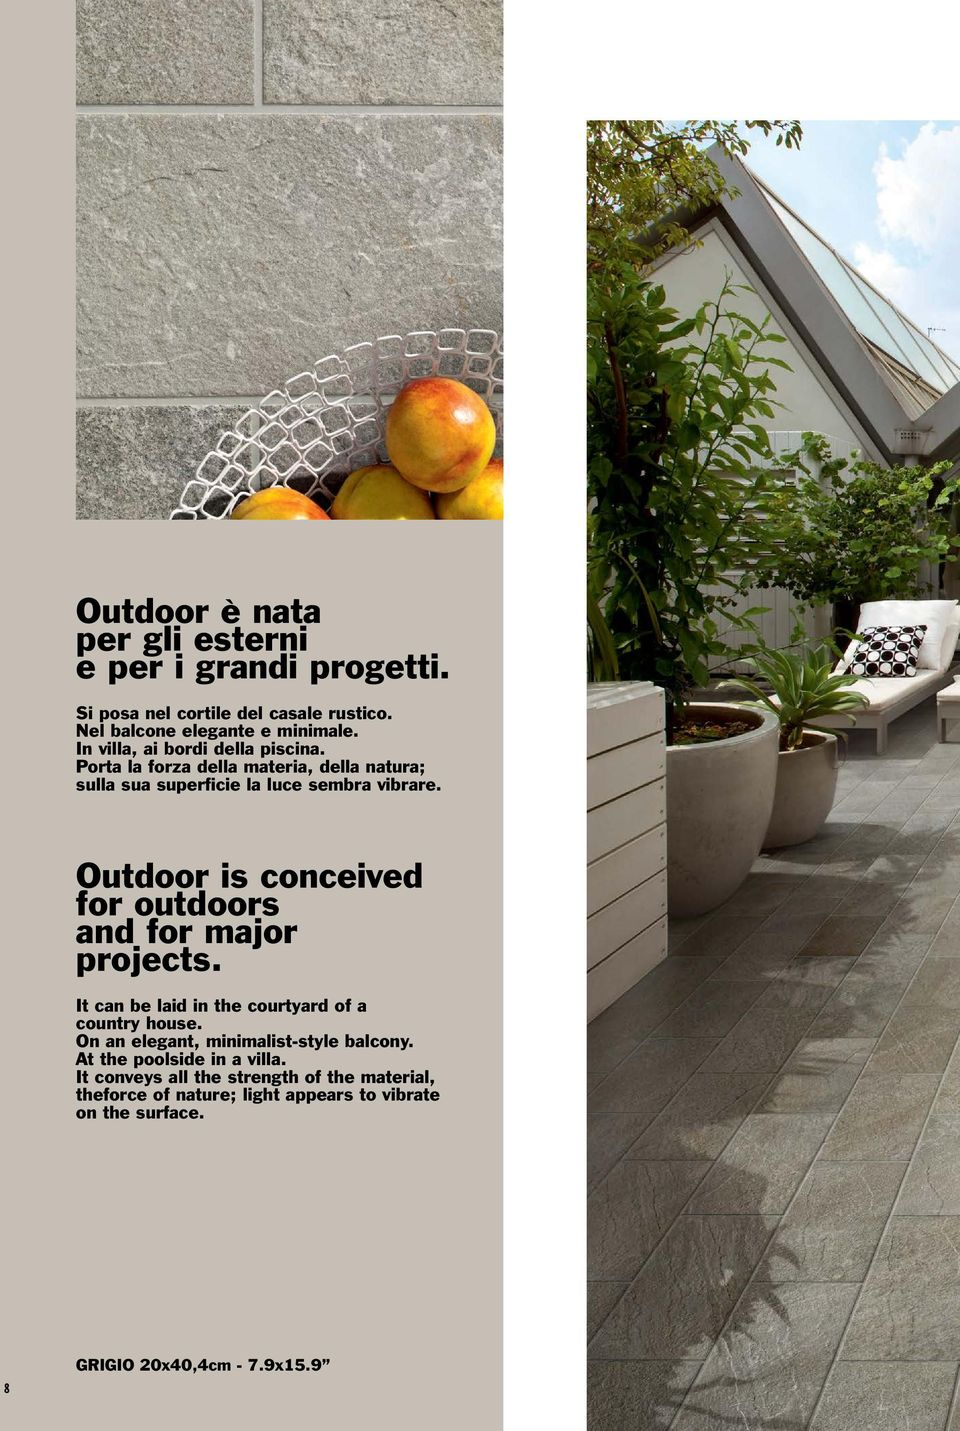 Outdoor is conceived for outdoors and for major projects. It can be laid in the courtyard of a country house.